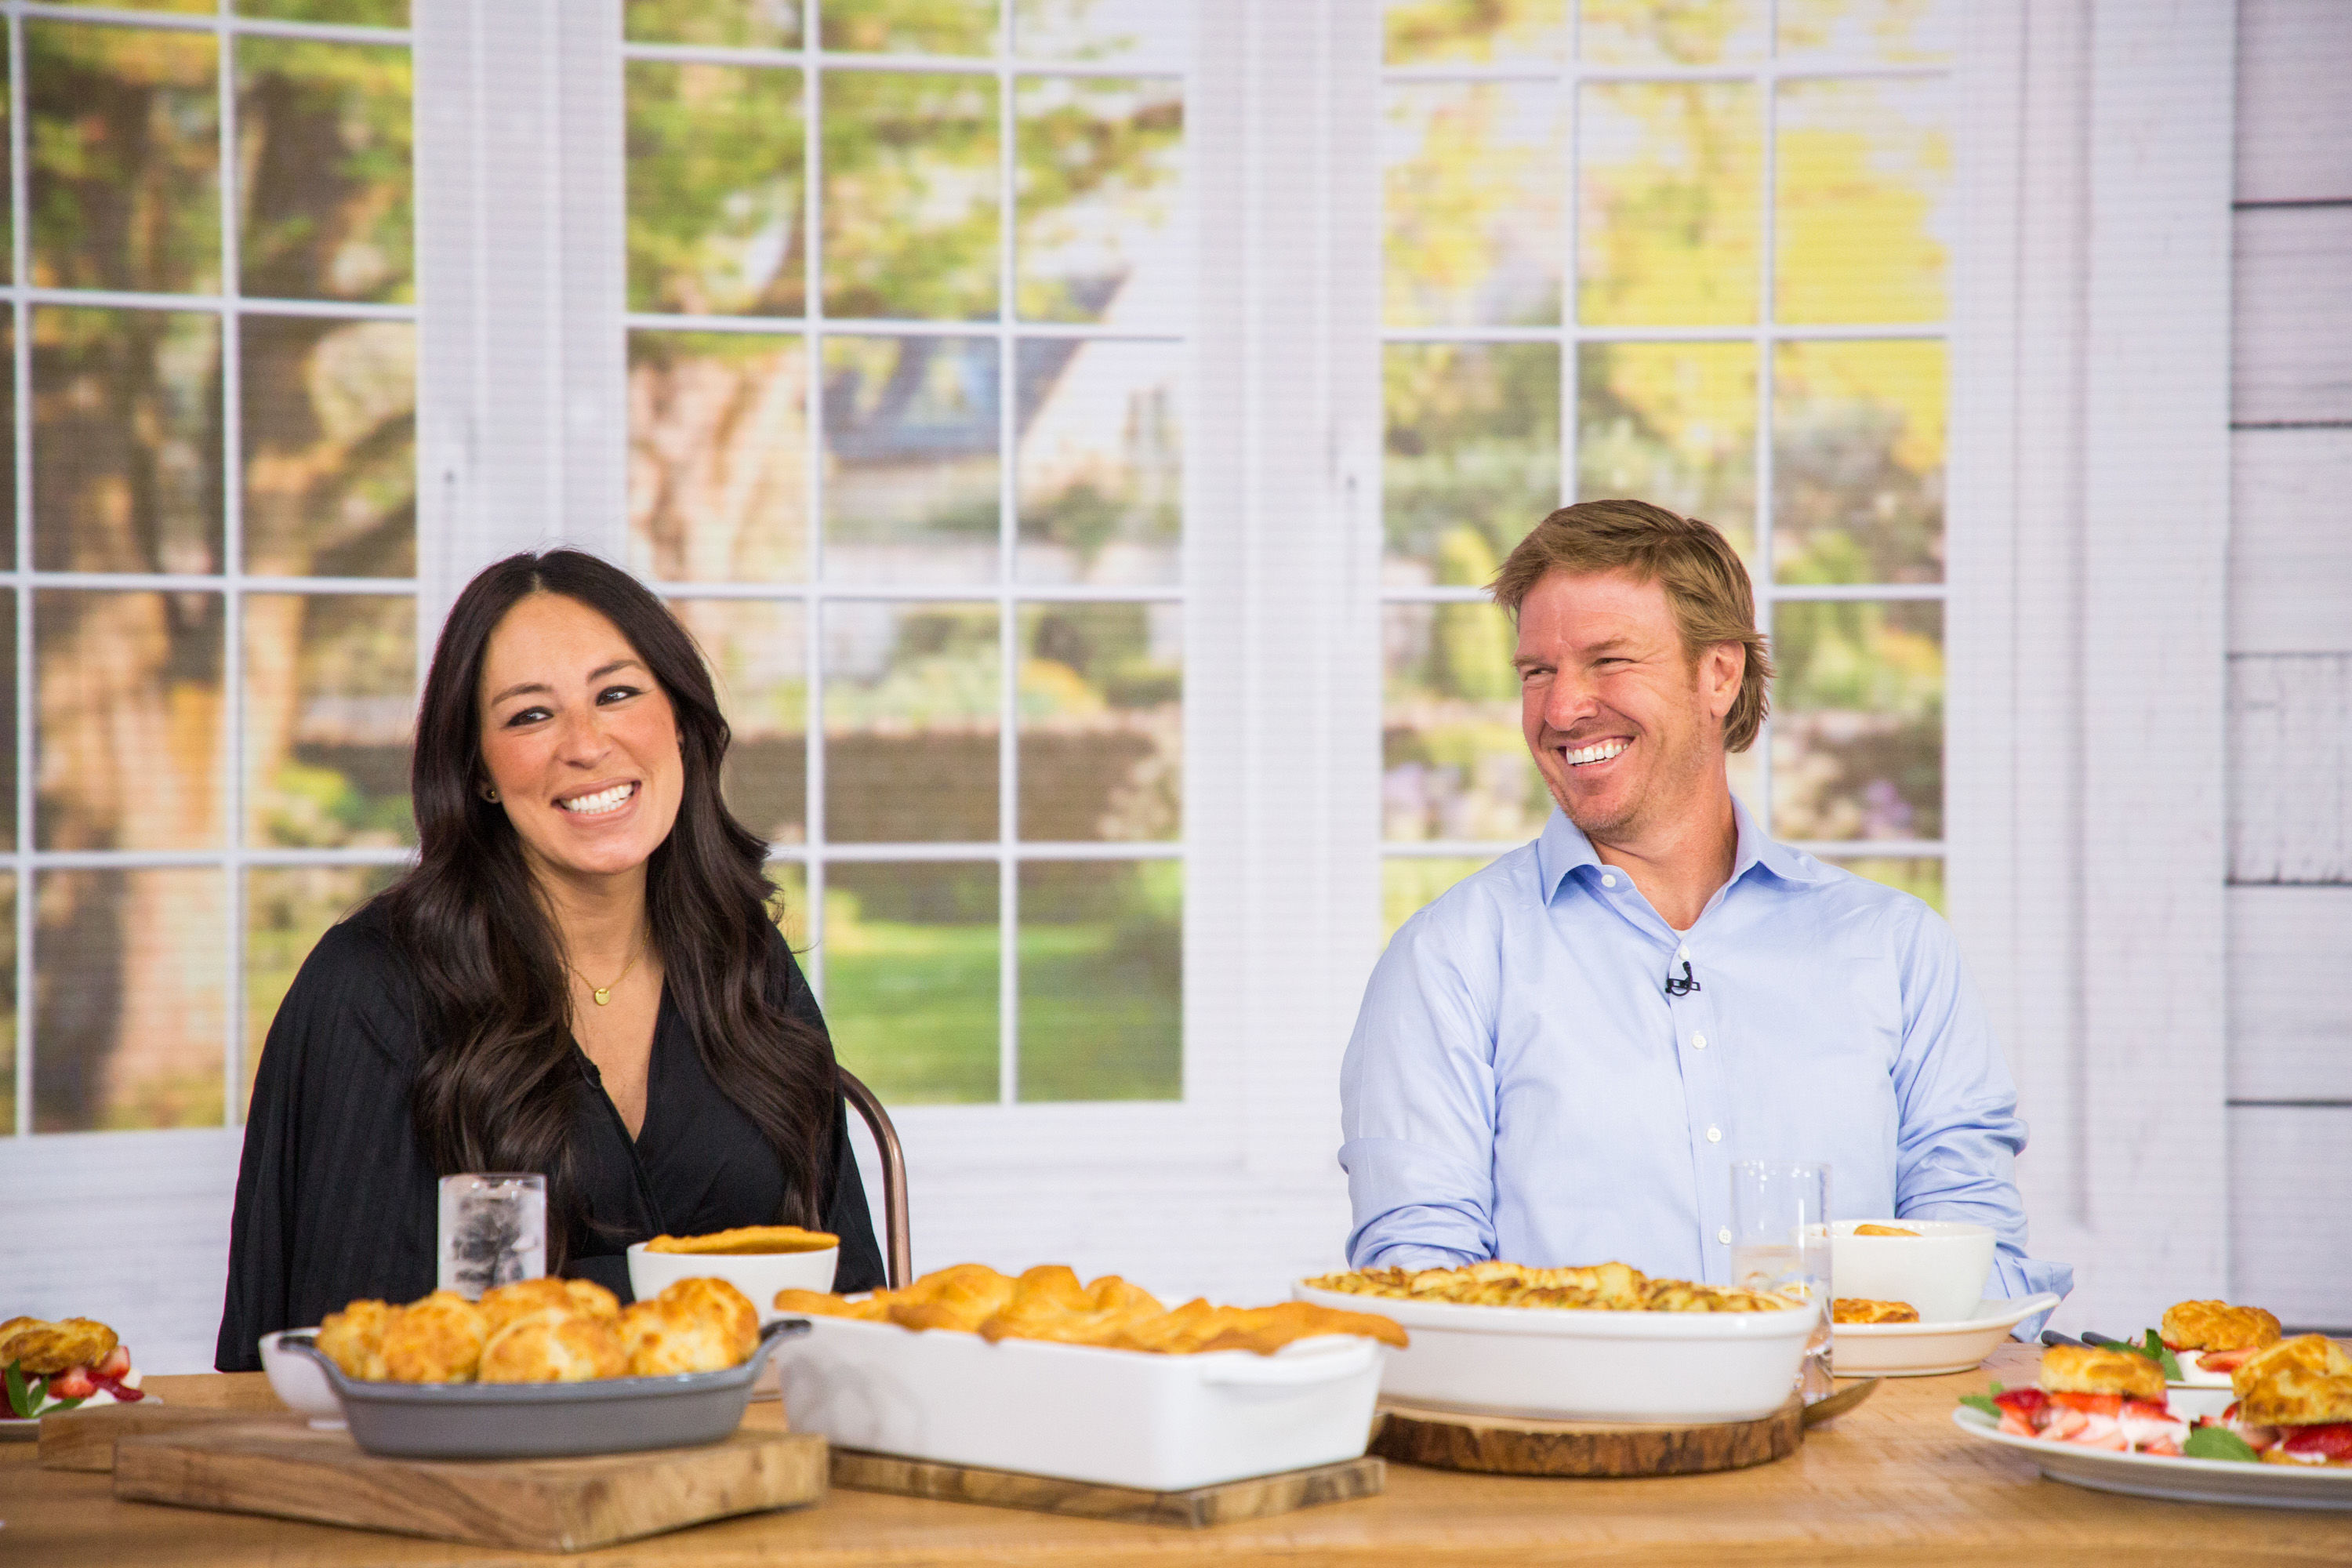 Joanna Gaines Unveils Her Latest Kitchen Inspiration — Inside an 100-Year-Old Finnish Cabin!